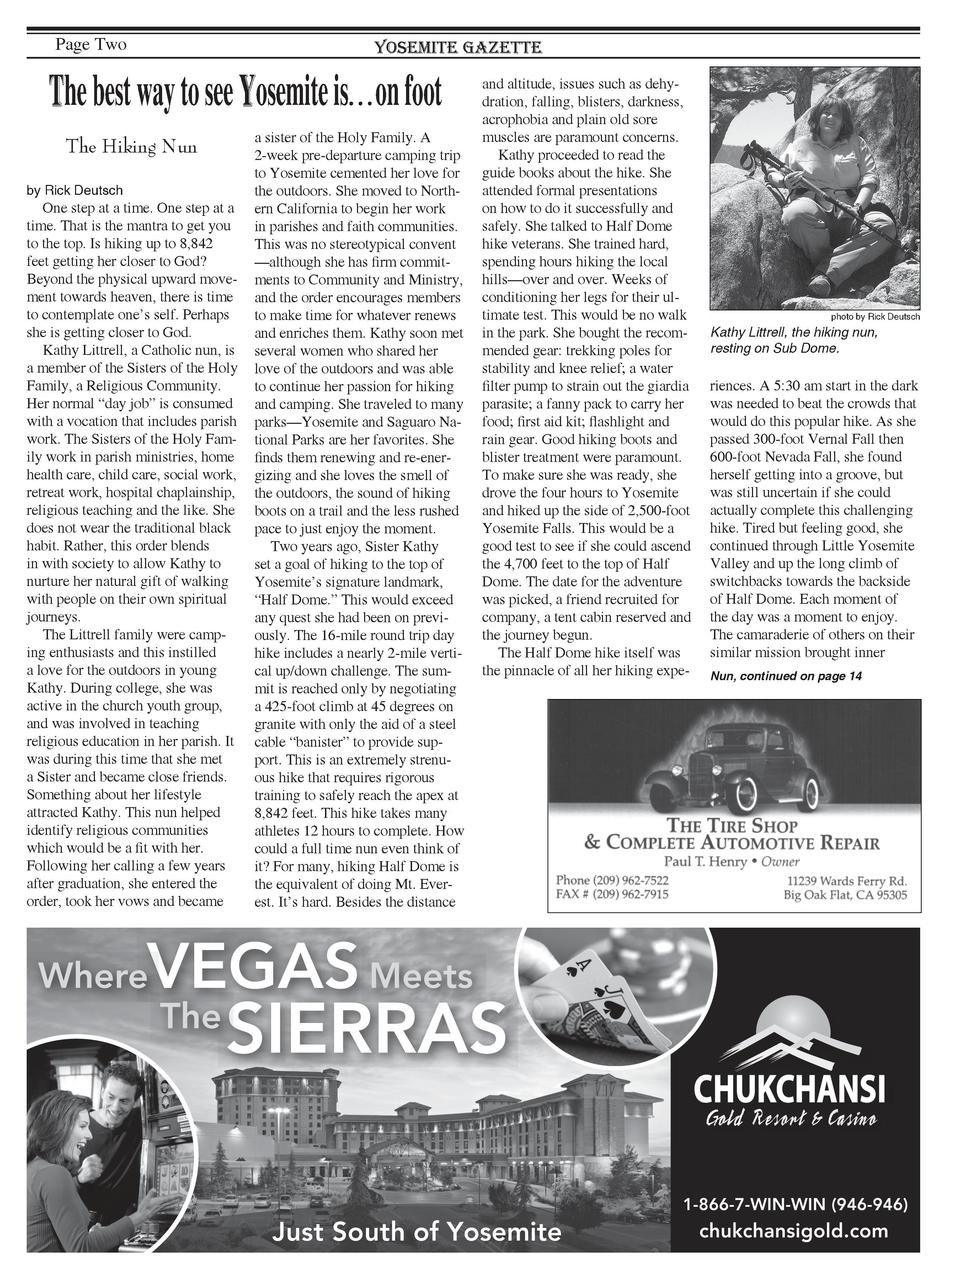 Page Two  Yosemite Gazette  The best way to see Yosemite is   on foot The Hiking Nun by Rick Deutsch  One step at a time. ...